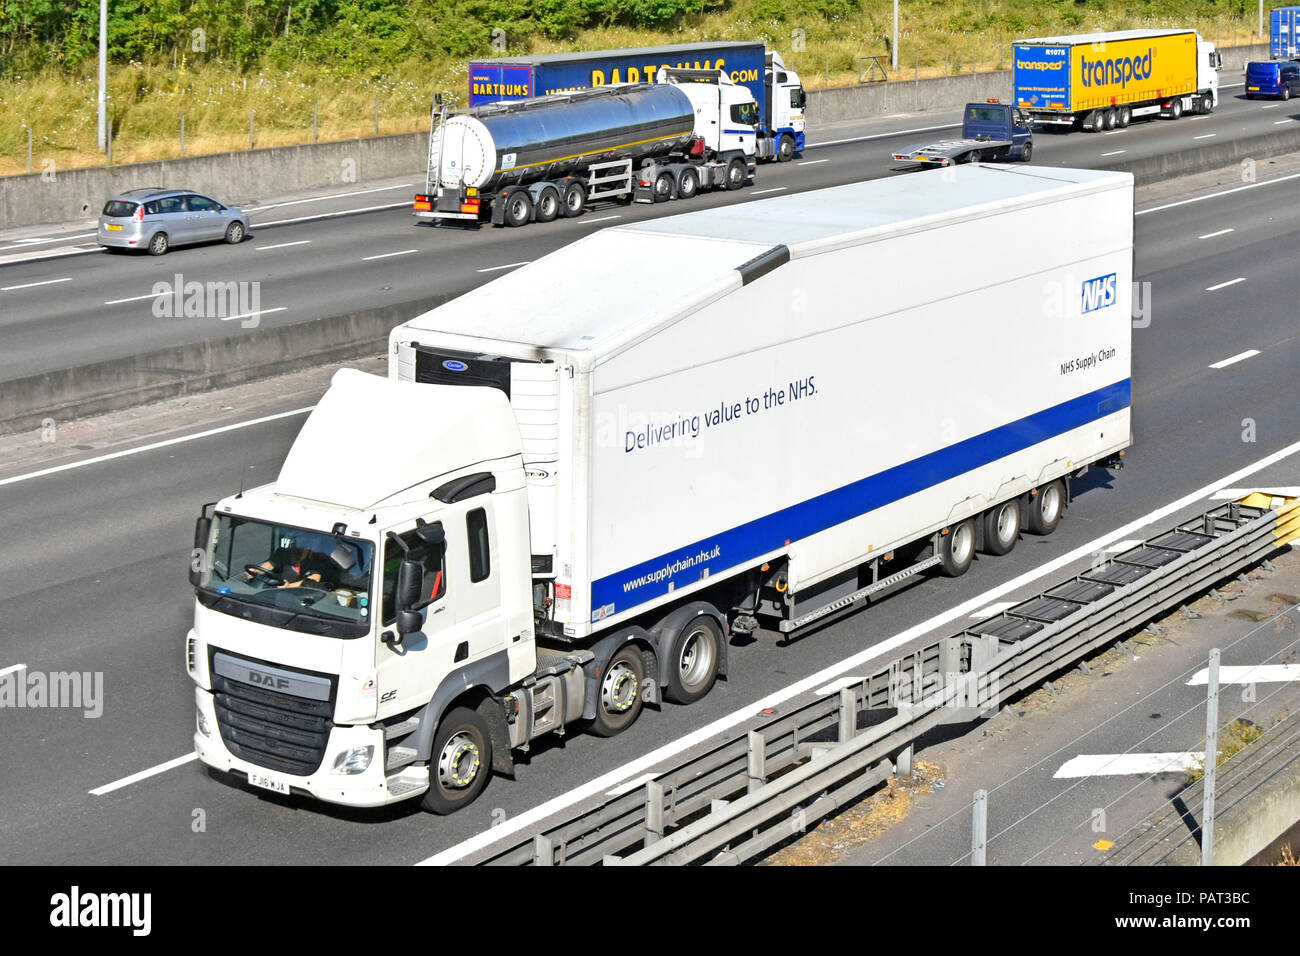 Side & front view of National Health Service healthcare supply chain DAF hgv NHS lorry truck & articulated trailer  driving along motorway England UK - Stock Image